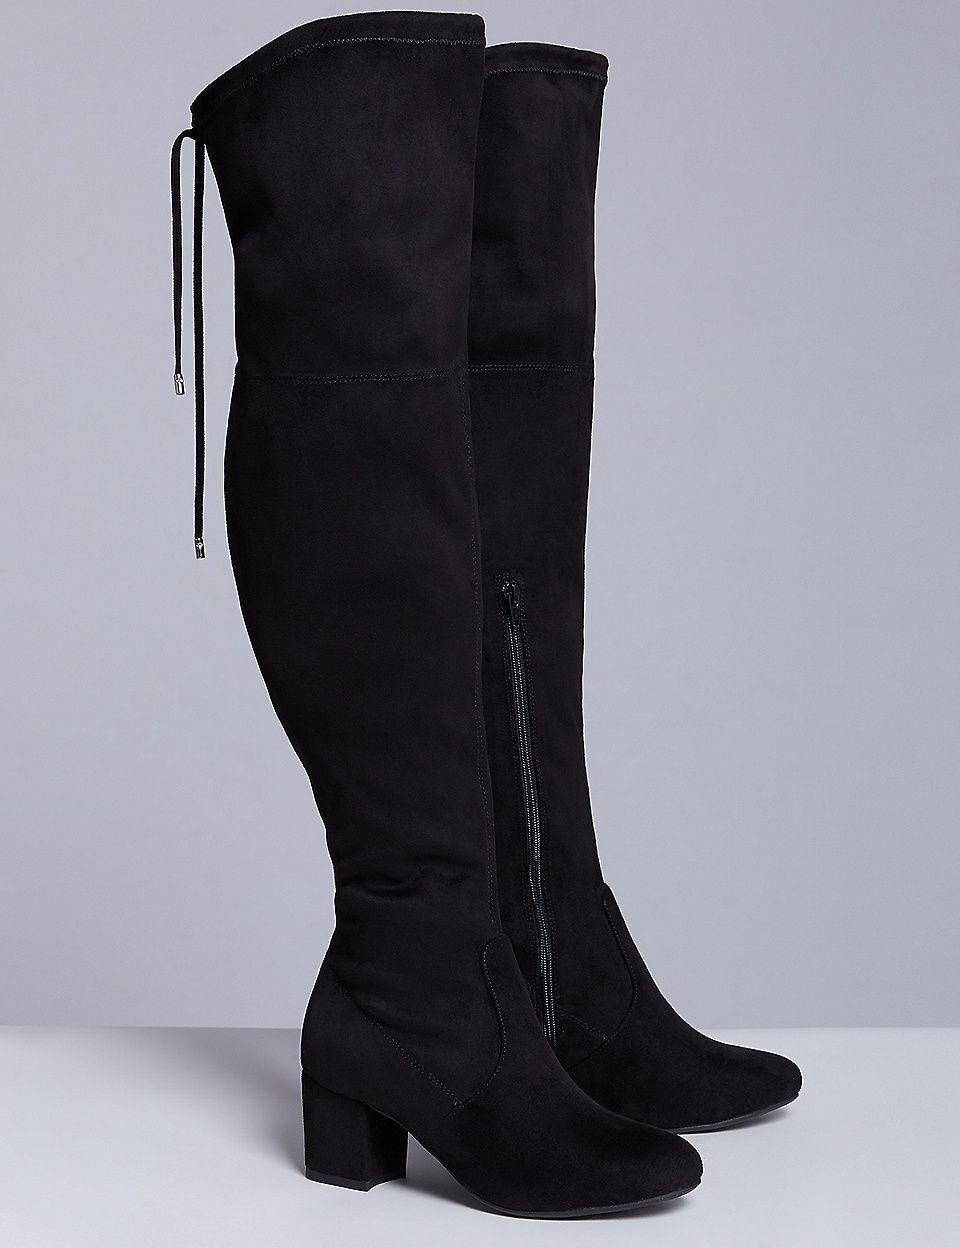 a44e2d4bf Plus Size Wide Calf Over-the-Knee Boot with Low Block Heel #plussize ...